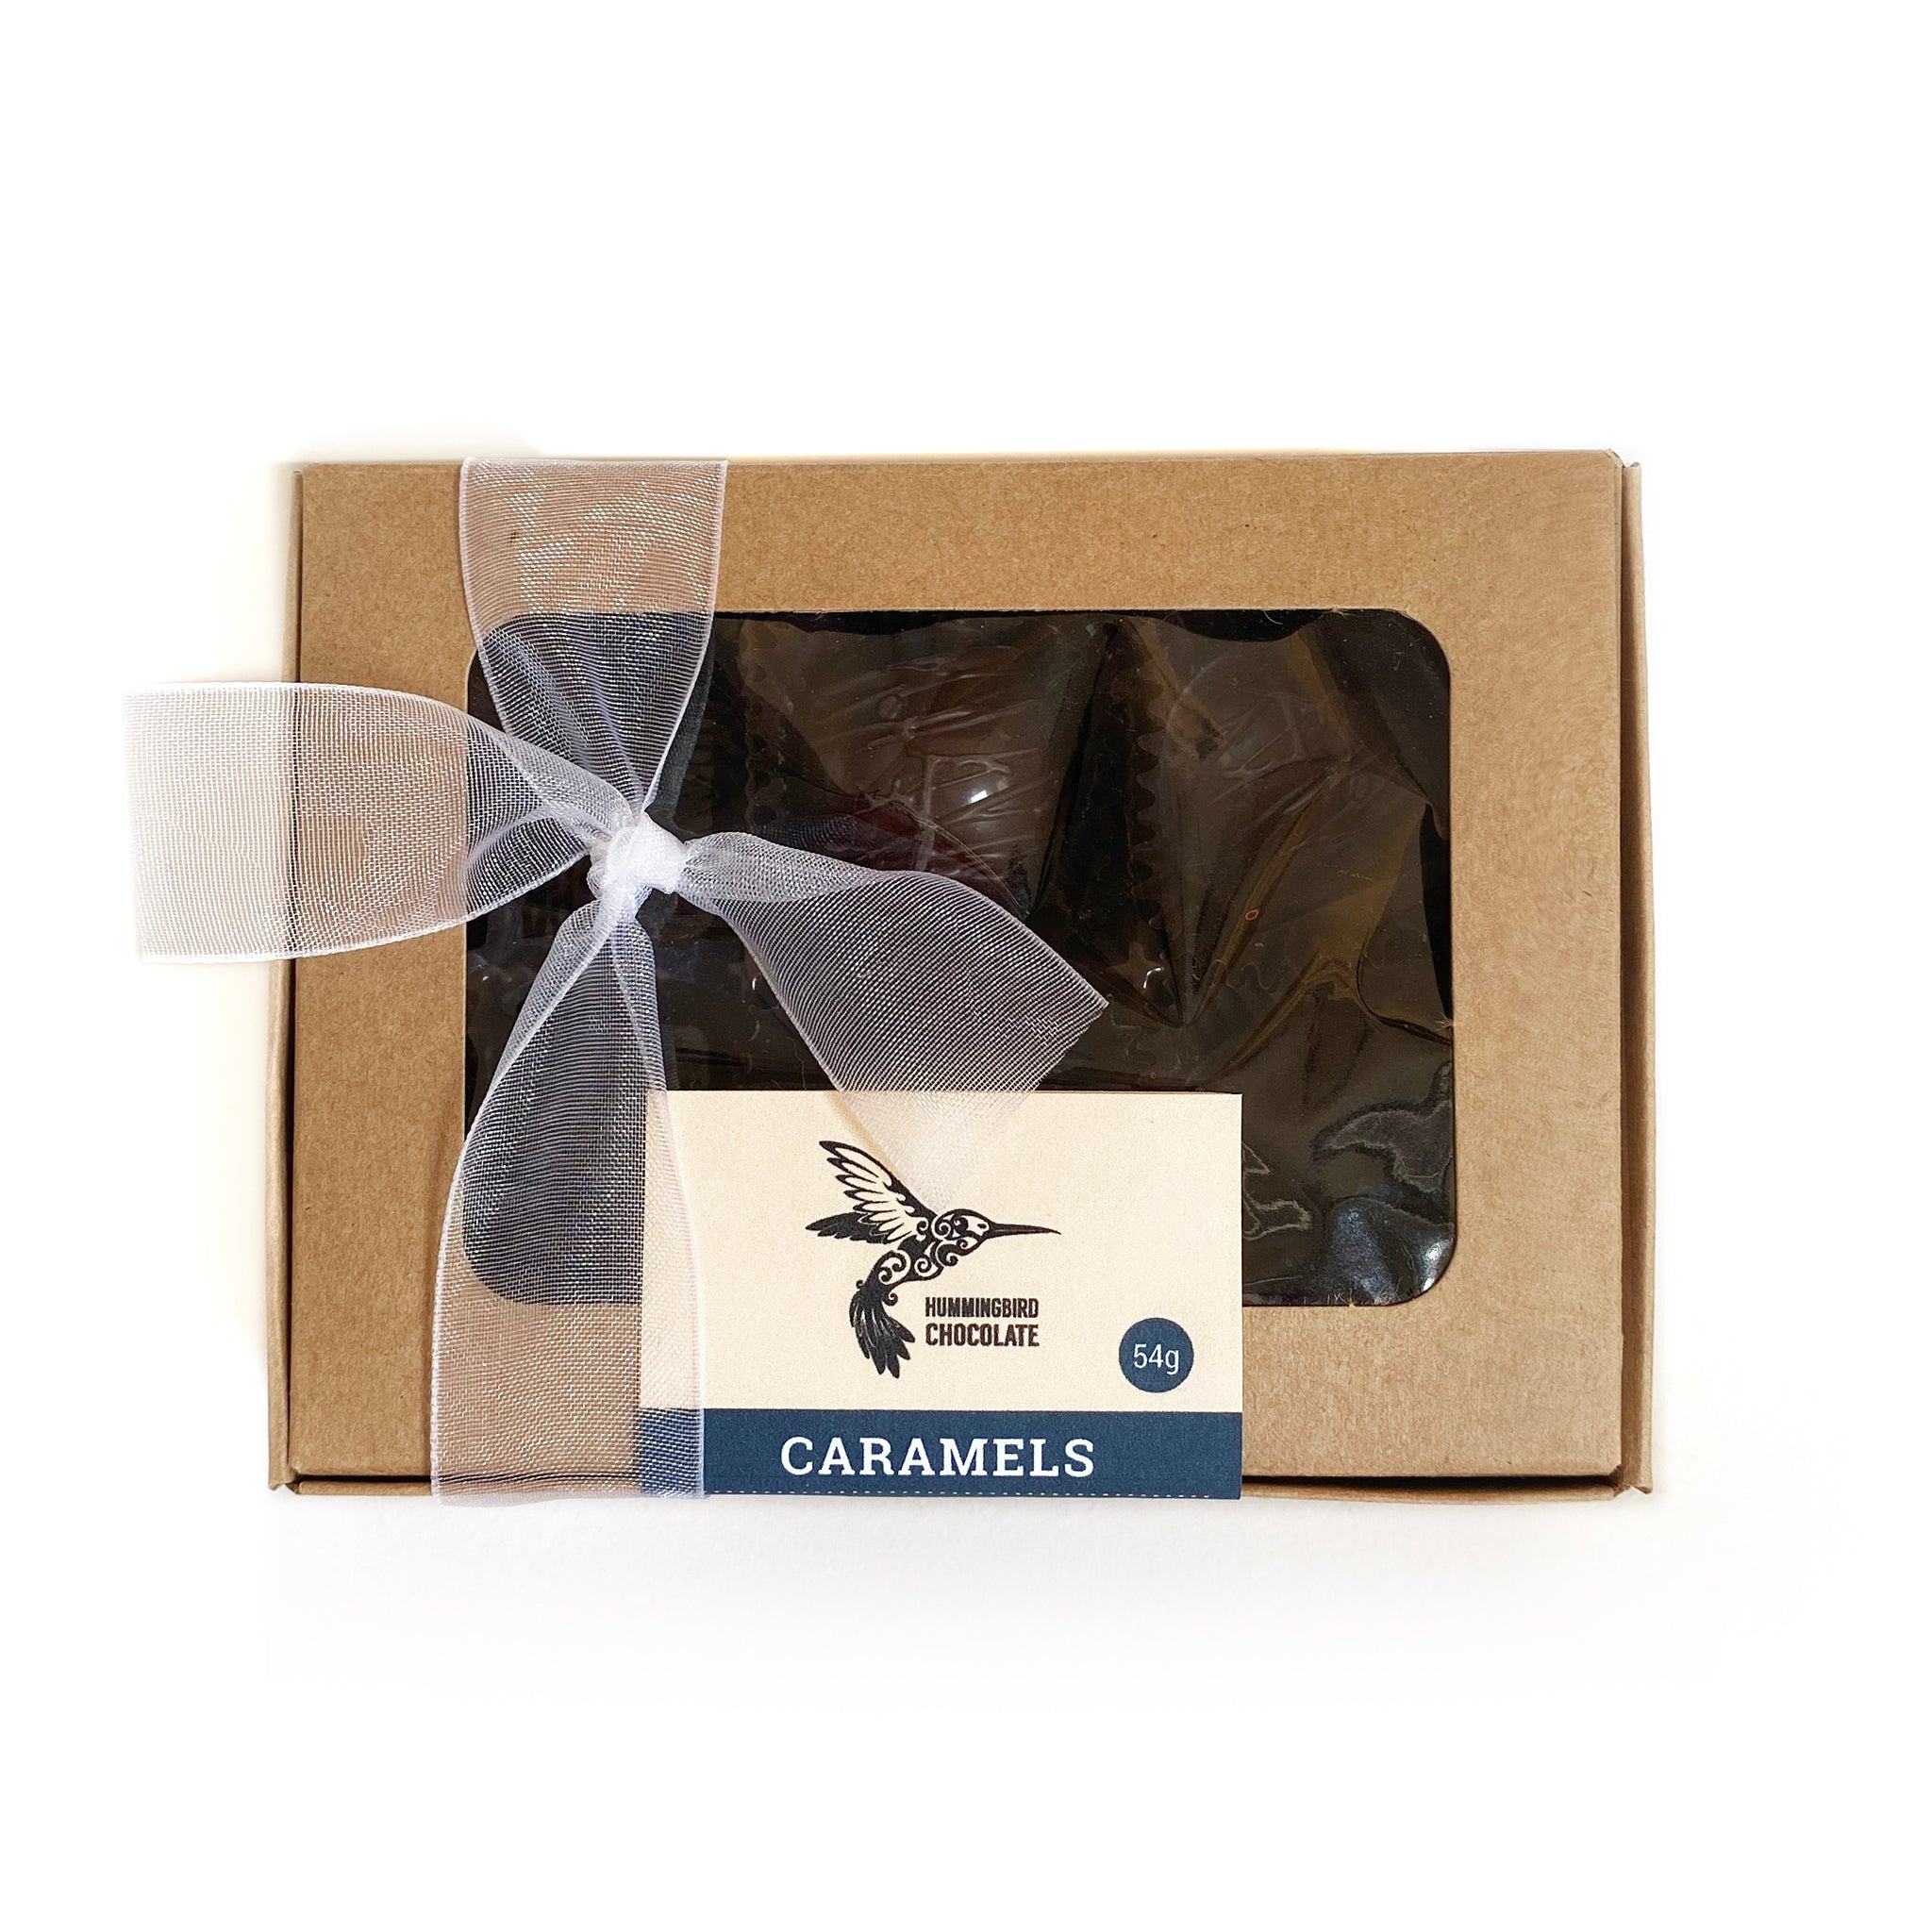 Hummingbird Chocolate, Box of 6 dark chocolate filled caramels, wrapped in a paper box and bow